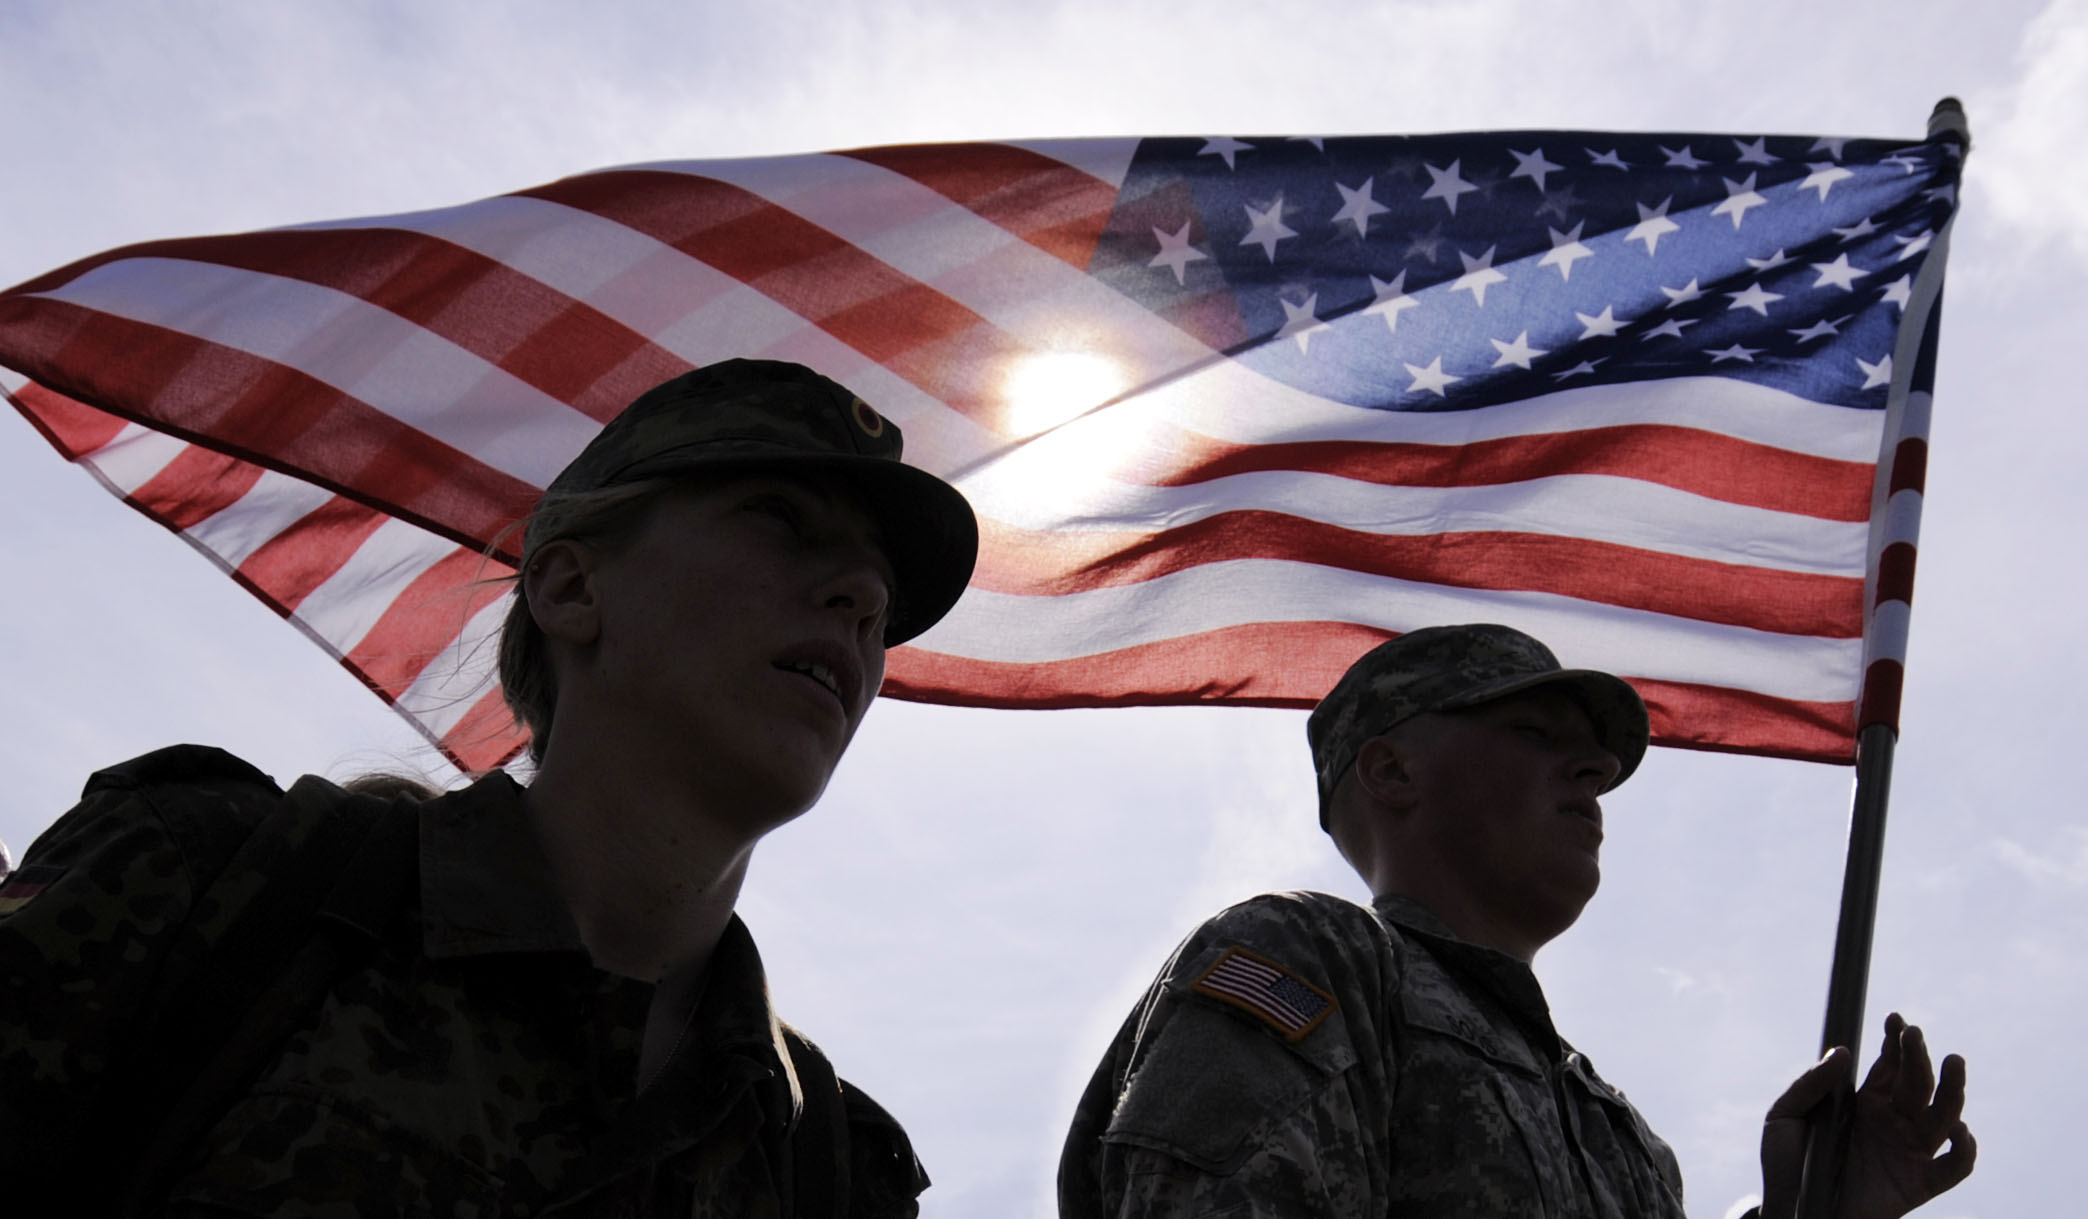 Sergeant Tanja Hoess of German Bundeswehr, left, and Privat Ian Soos of the U.S. Army, right, march with the U.S. flag during the Patrouille – Hlidka – Euregio – Egrensis (PHEE) 2011 International Military Exercise of soldiers from the Armed Forces of the Czech Republic, German Bundeswehr and US Army in Gera, central Germany, on Thursday, June 23, 2011. Some 50 professional soldiers and military reserves will be divided into mixed international teams to fulfil several tasks. (AP Photo/Jens Meyer)